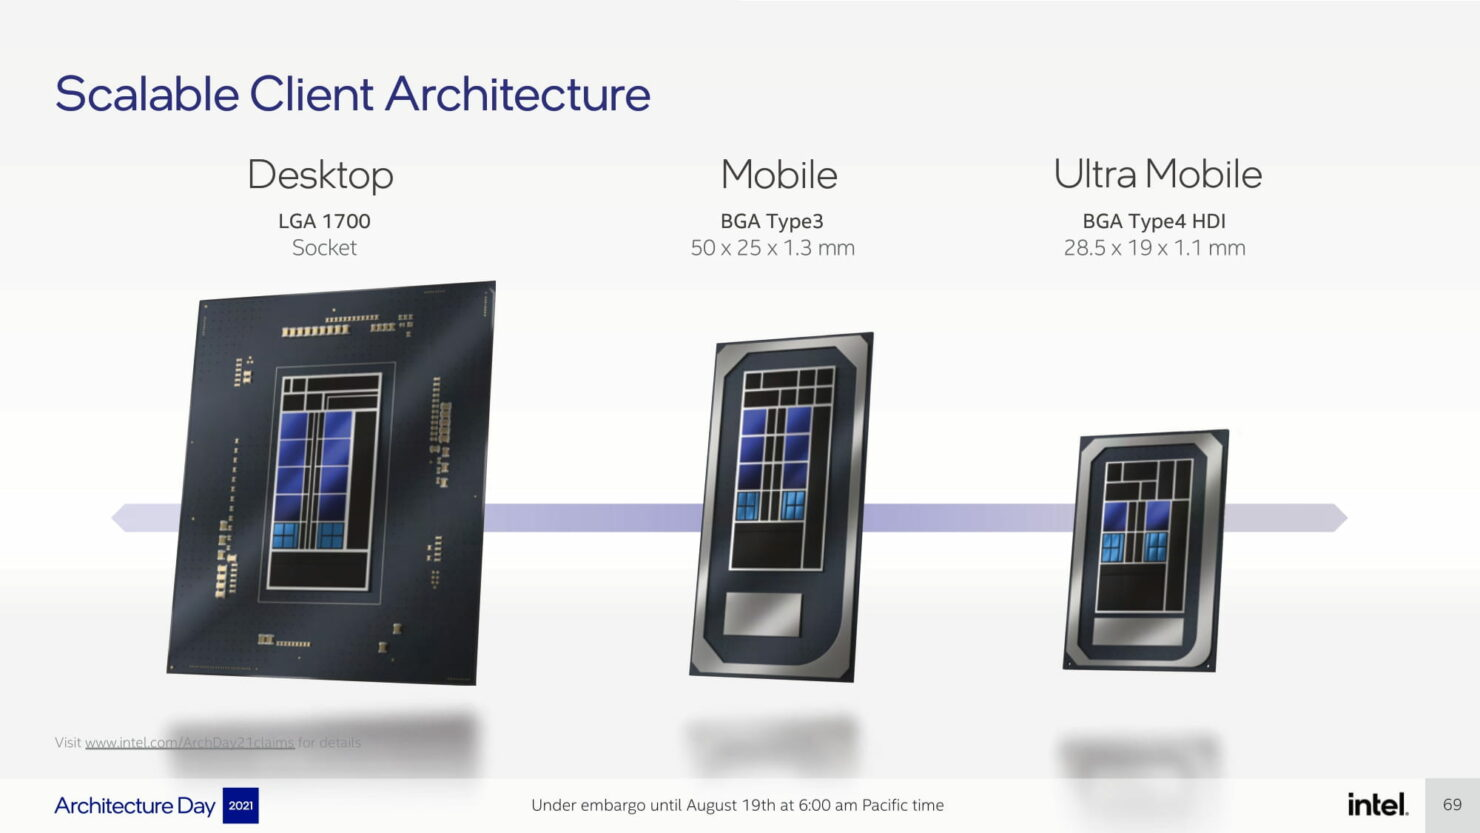 intel-12th-gen-alder-lake-mobility-cpu-roadmap-confirms-alder-lake-p-with-14-cores-&-alder-lake-m-with-10-cores,-first-laptops-with-ddr5-support